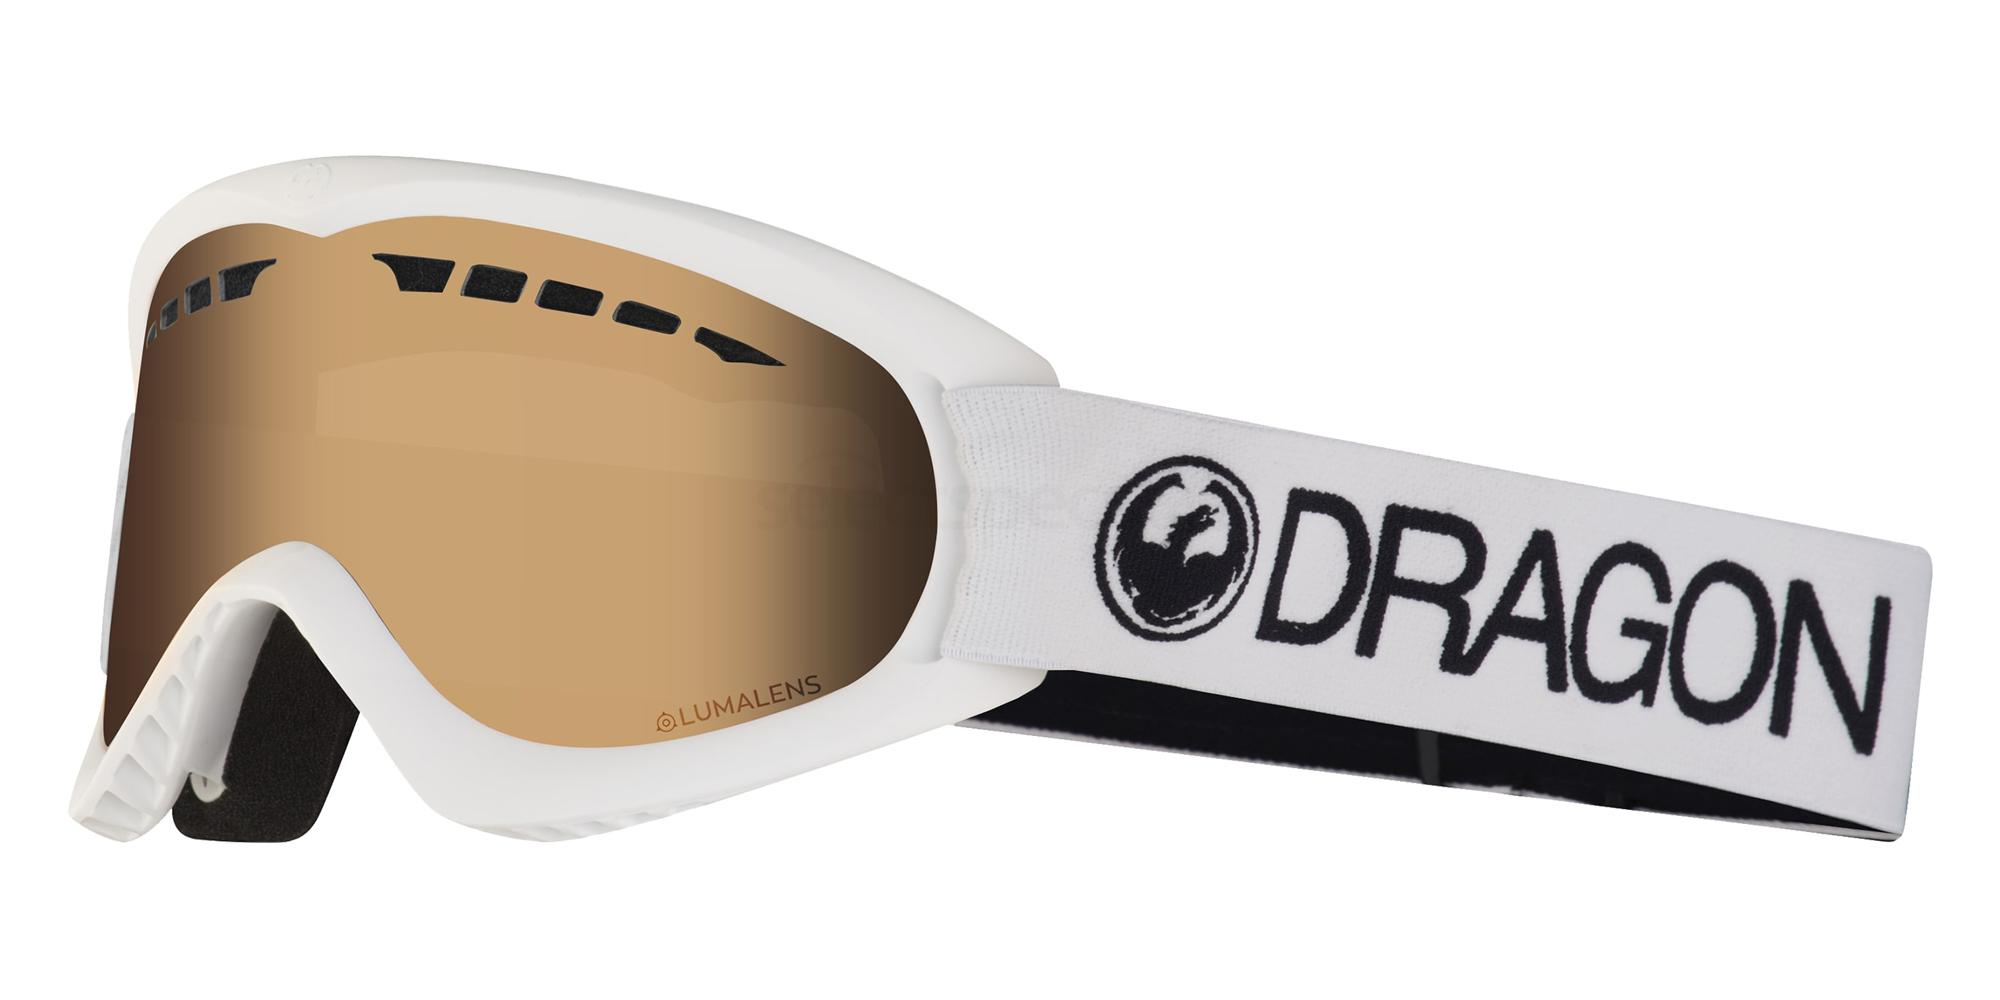 198 DR DX 9 Goggles, Dragon